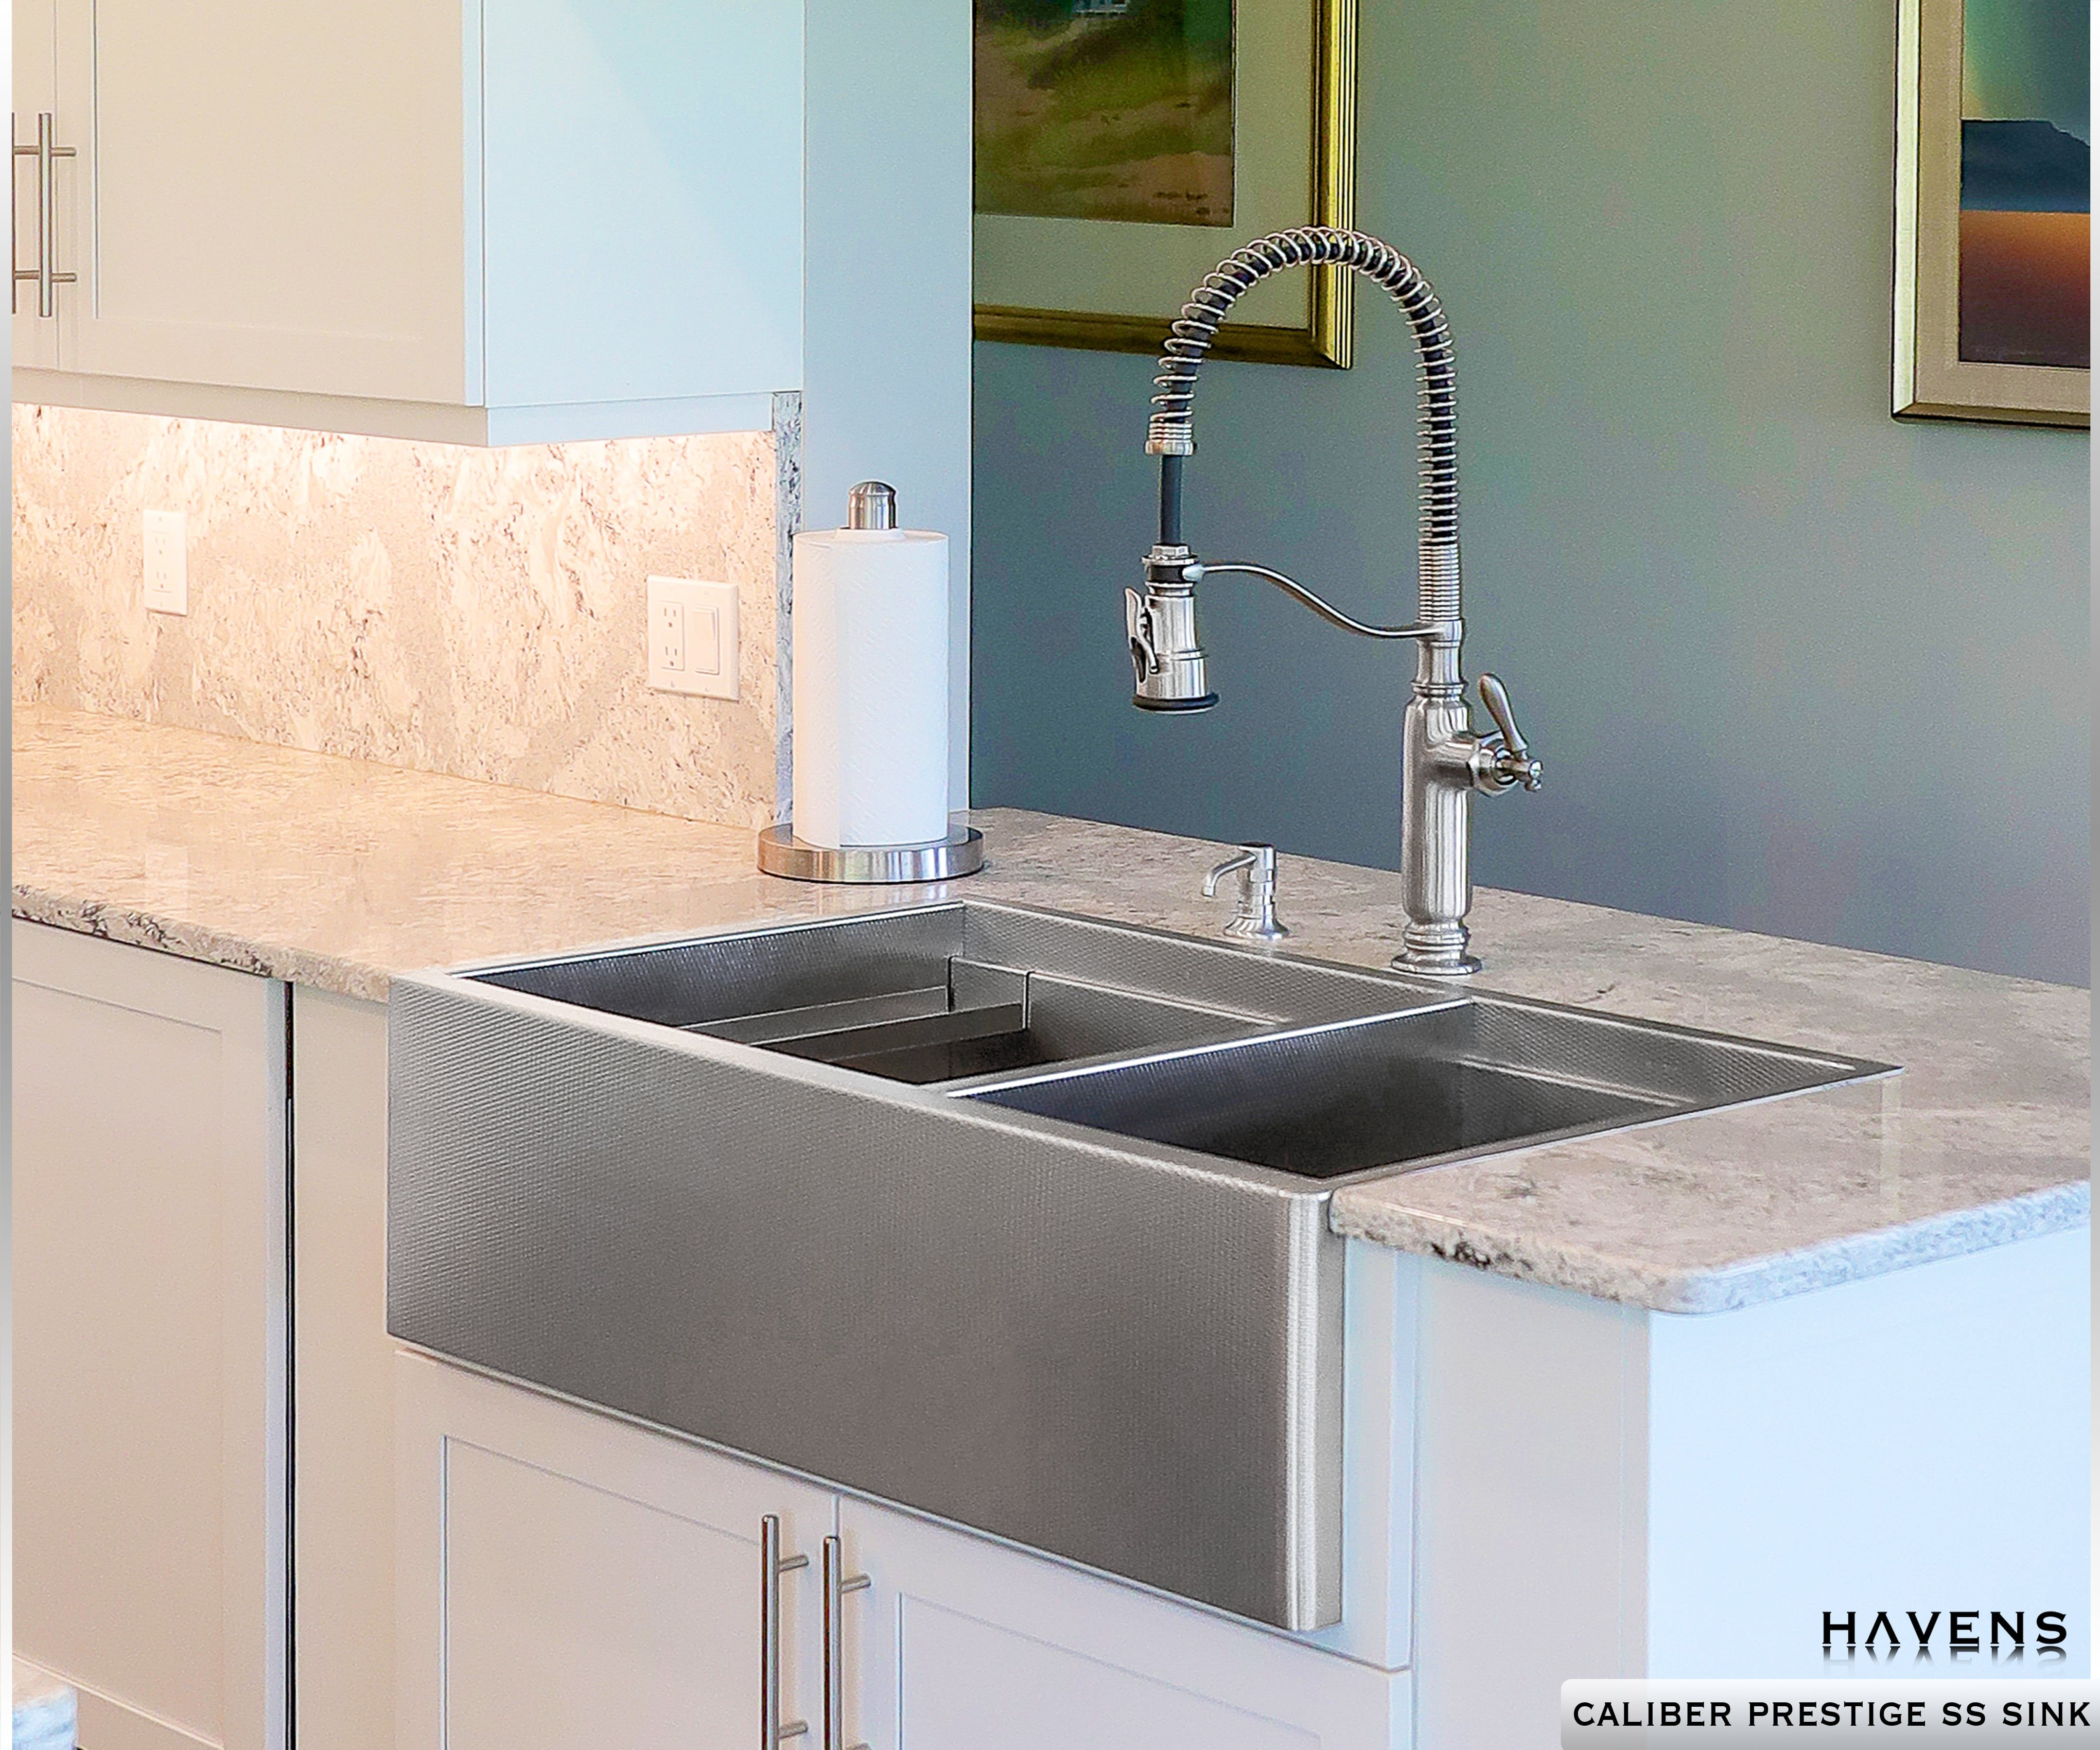 Caliber Stainless Farmhouse Sink Double Bowl In 2020 Double Bowl Sink Sink Stainless Steel Sinks